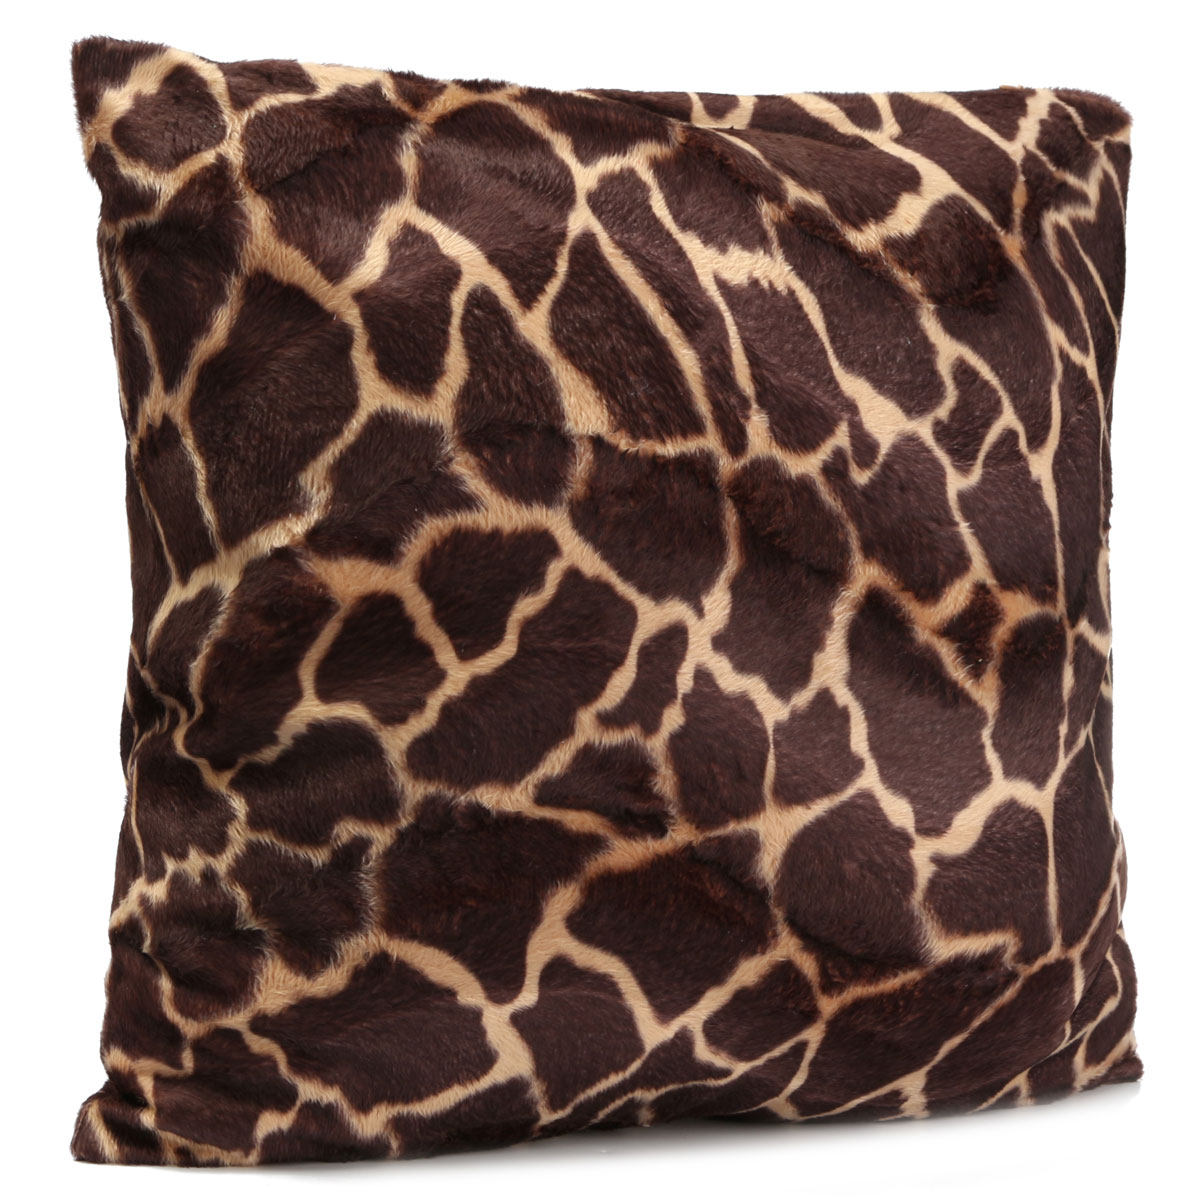 Animal Print Pillows For Couch : Pillows - Leopard Animal Print Pattern Pillow Case Sofa Waist Throw Cushion Cover Home ...